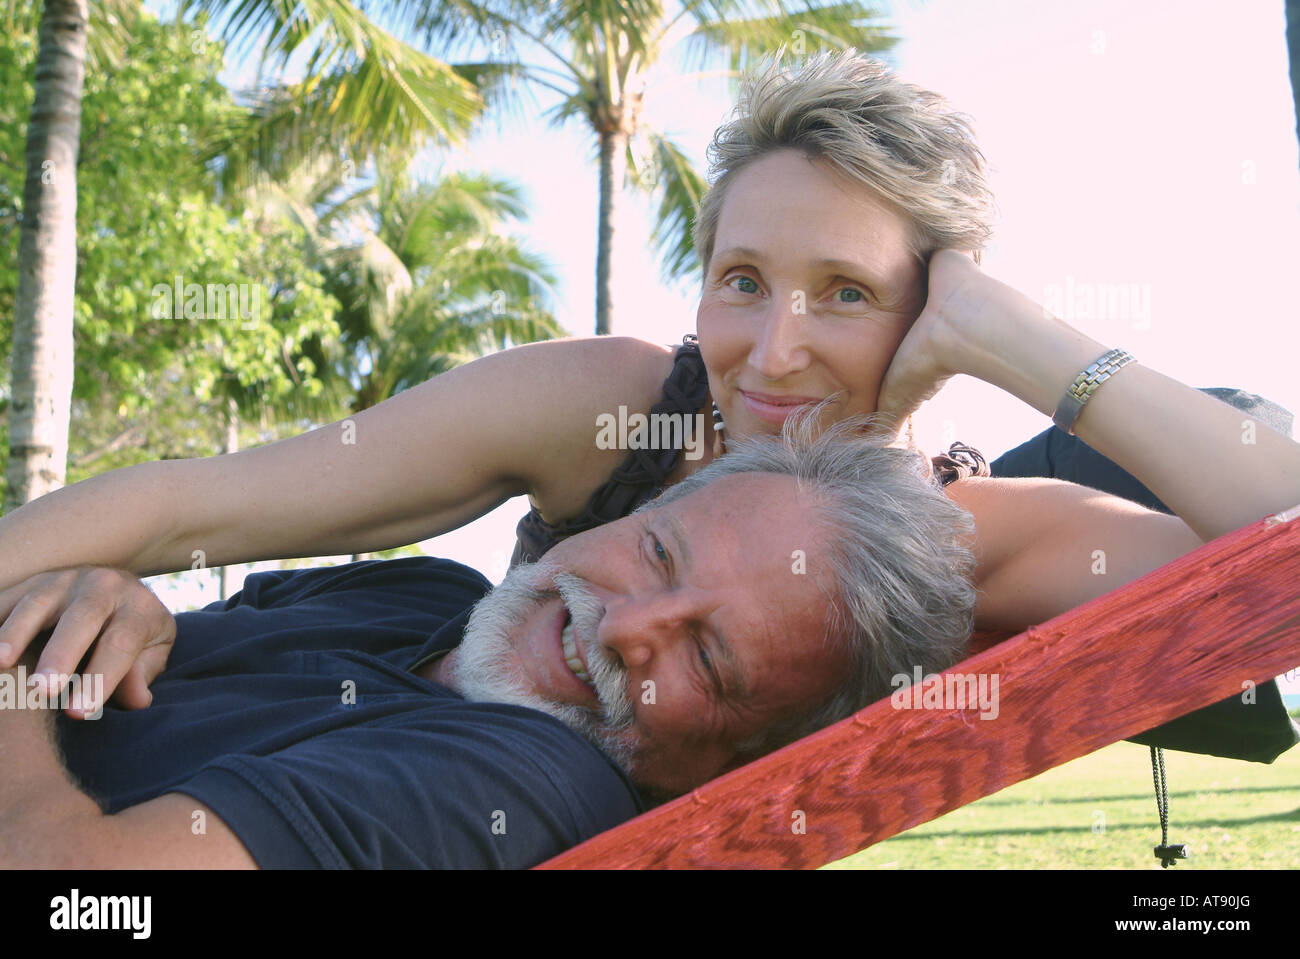 A couple relaxes in a hammock at Queens Beach, Waikiki. Stock Photo